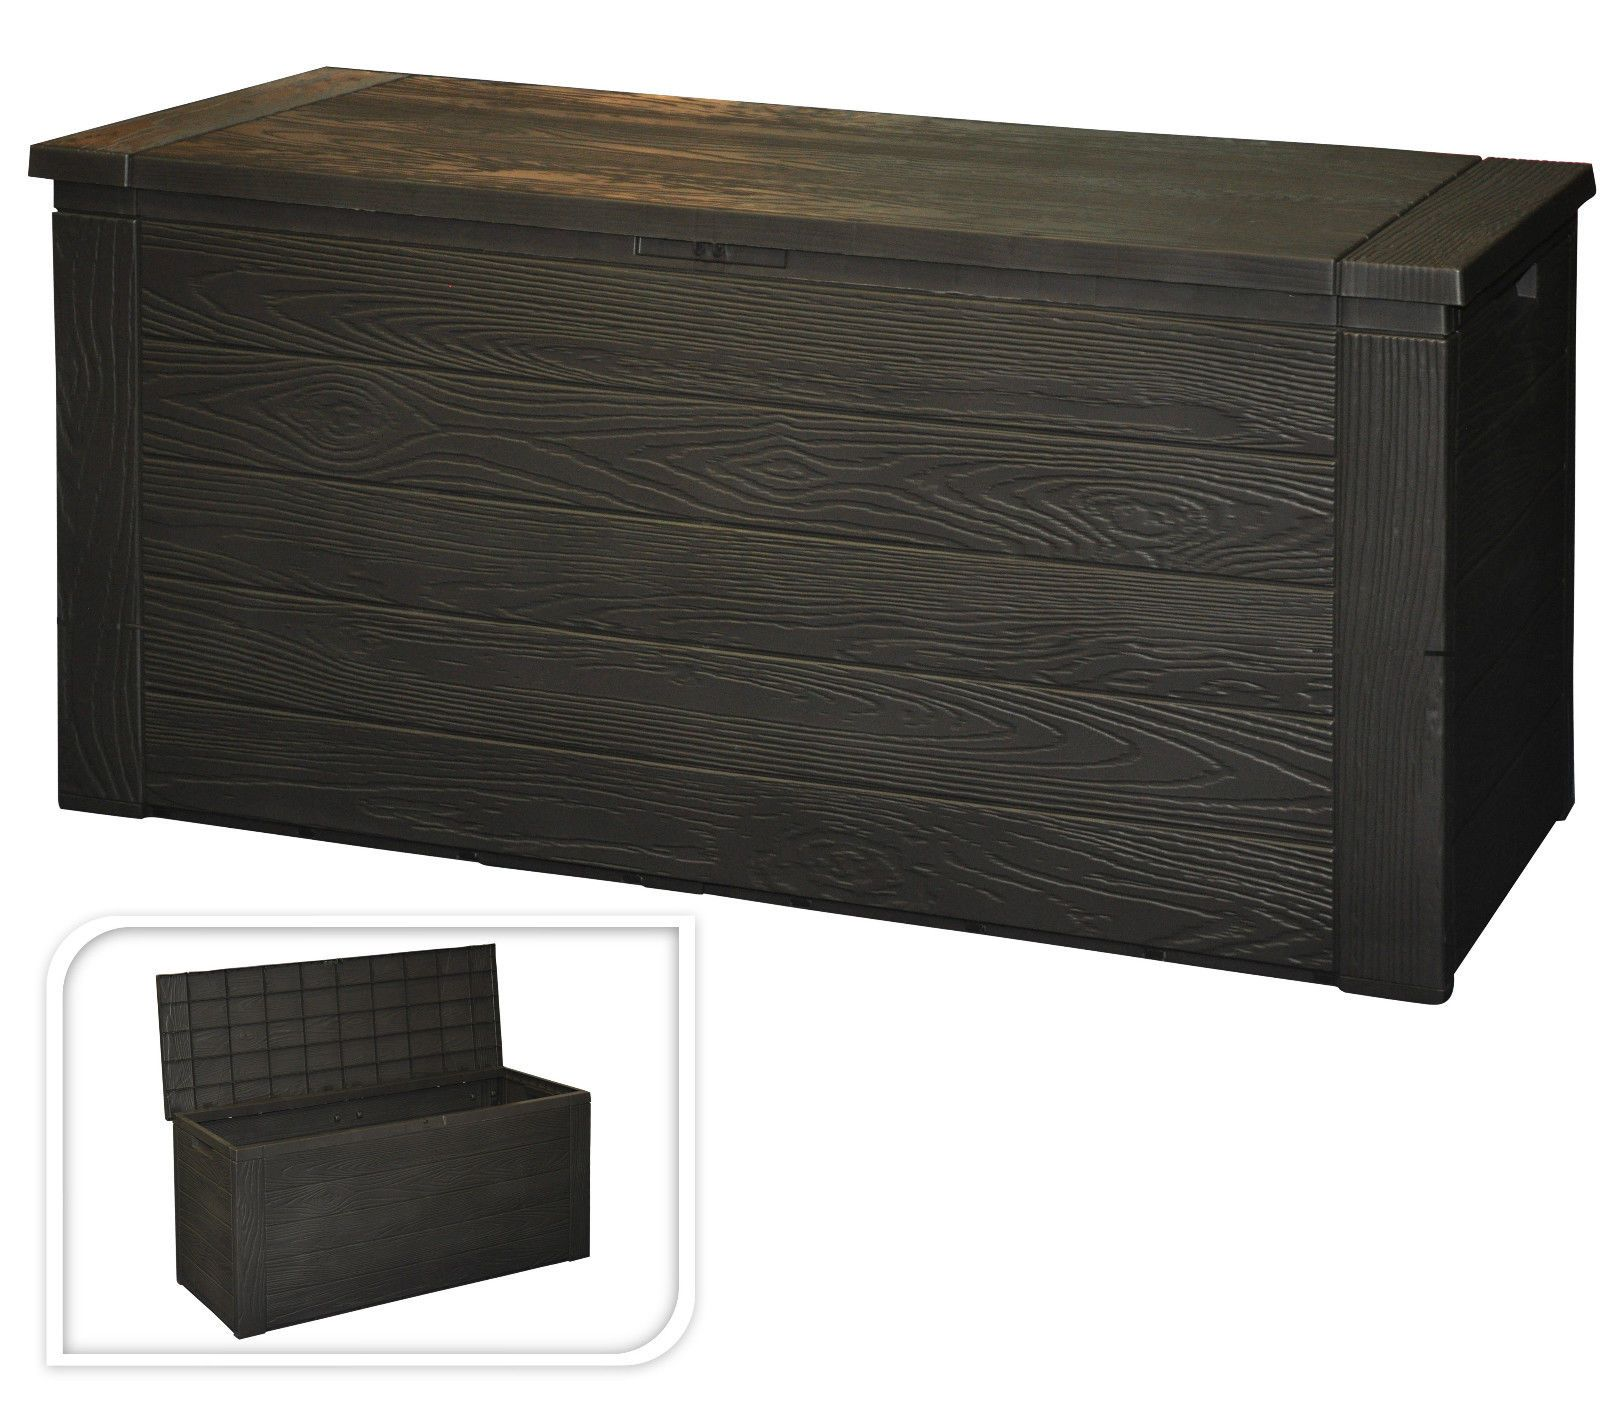 storage rattan outdoor black cushion weave box patio